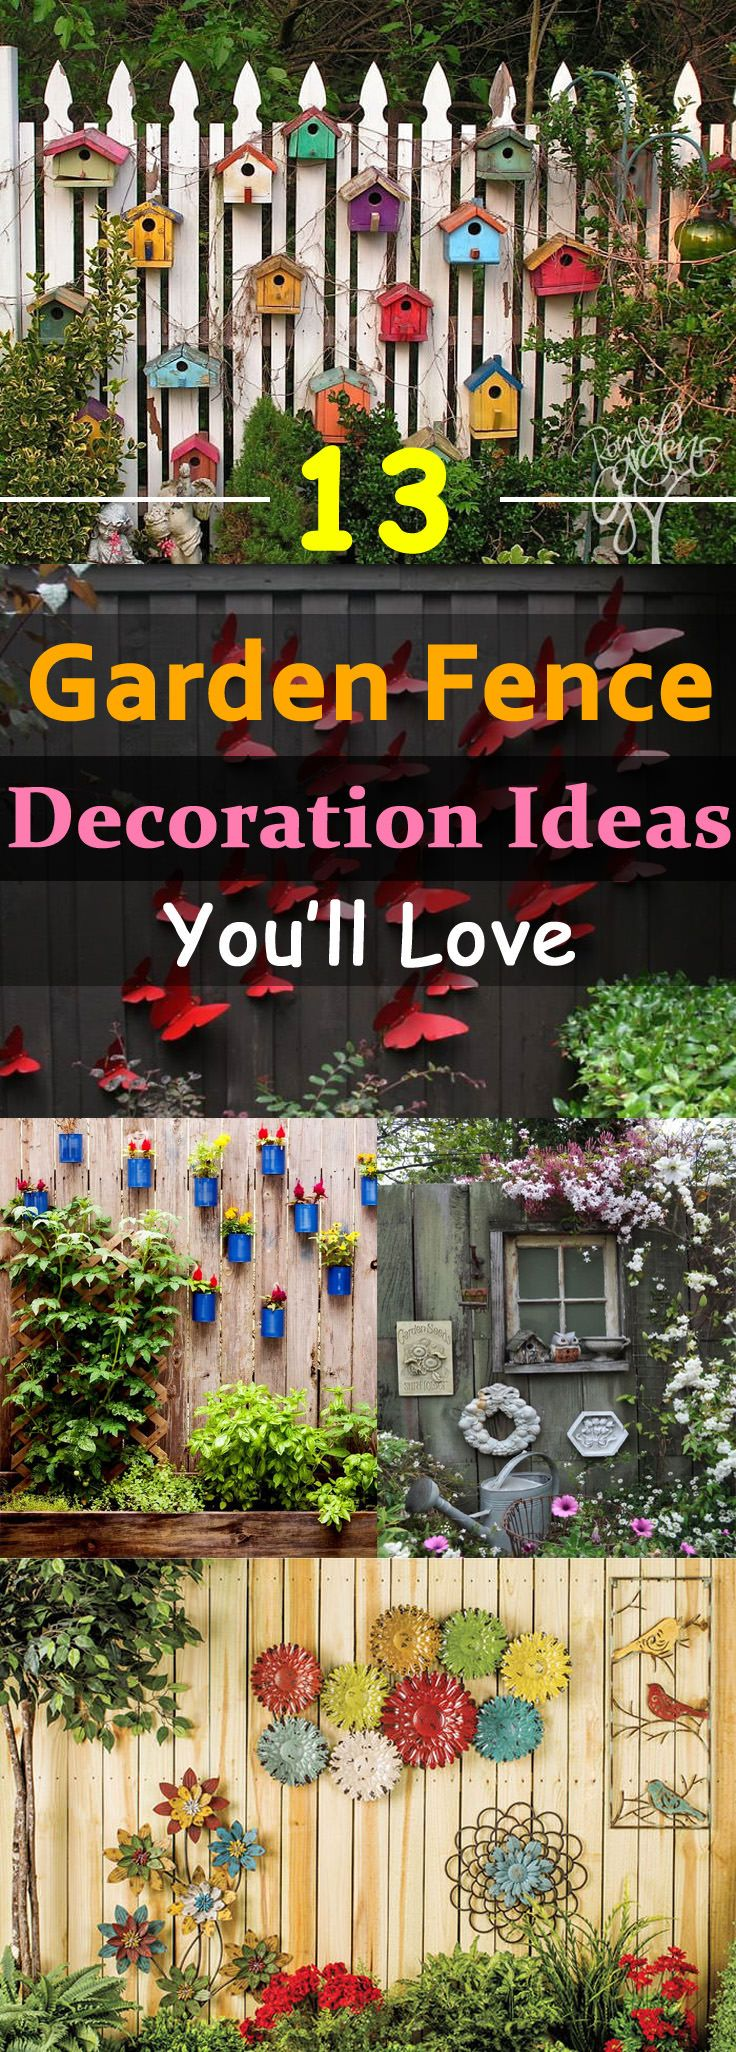 You Can Beautify Your Garden By Customizing Your Garden Fences, Here Weu0027ve  13 Garden Fence Decoration Ideas For You To Follow.